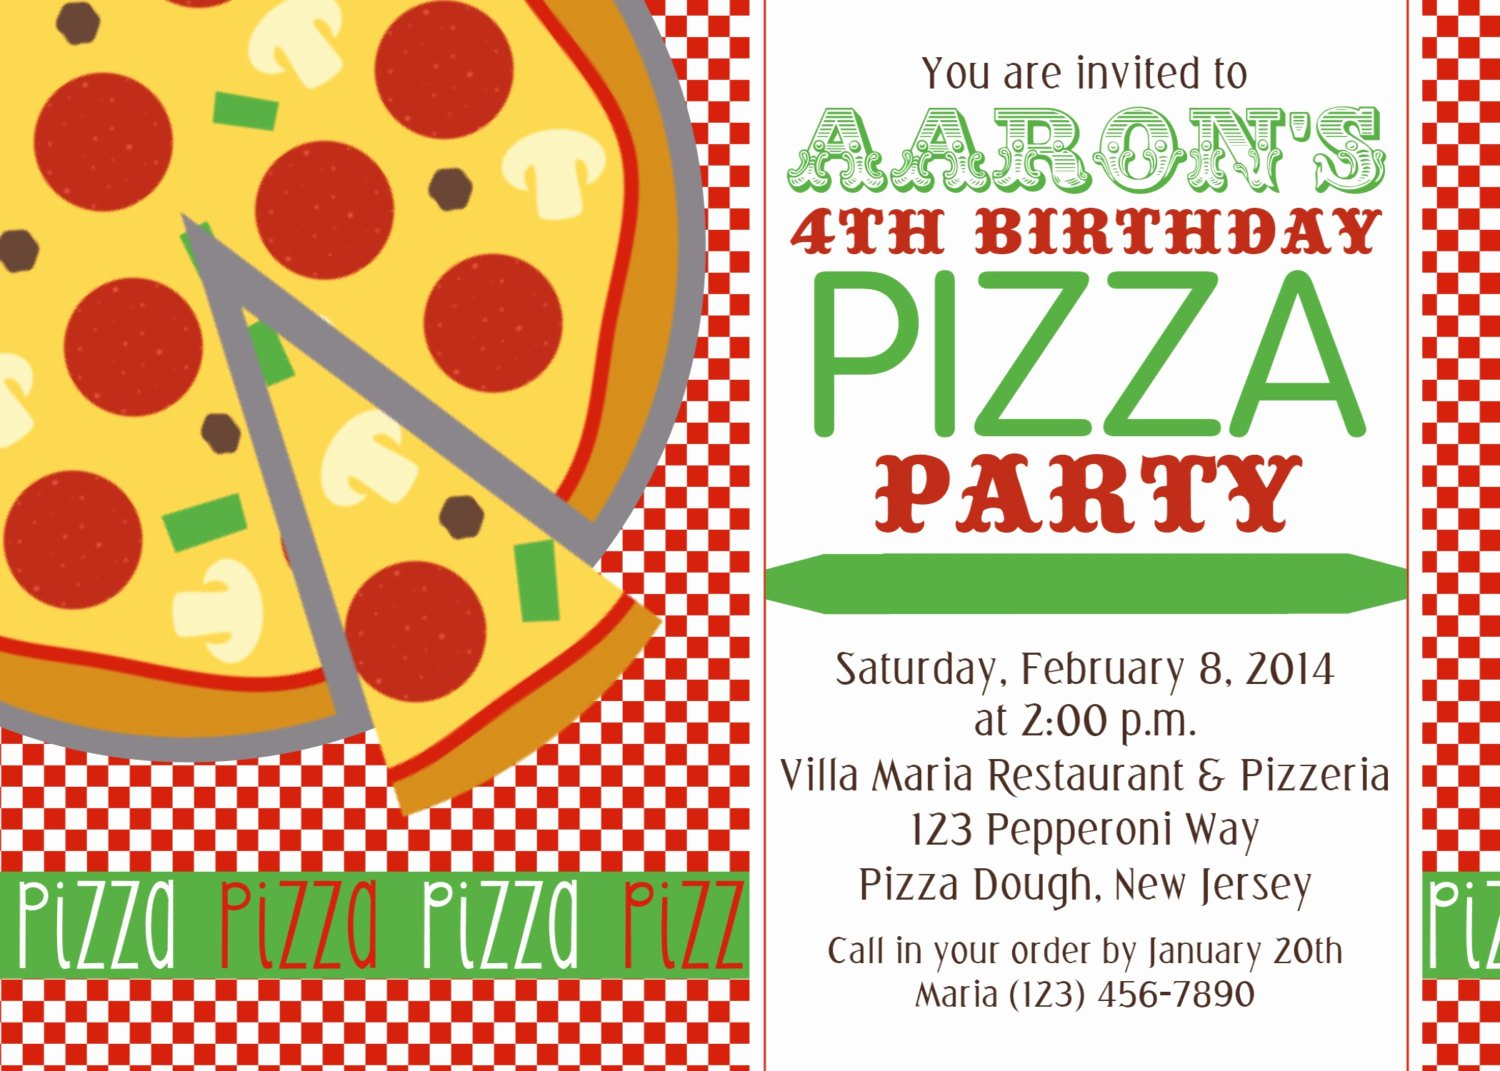 Pizza Party Invites Template New Chandeliers & Pendant Lights